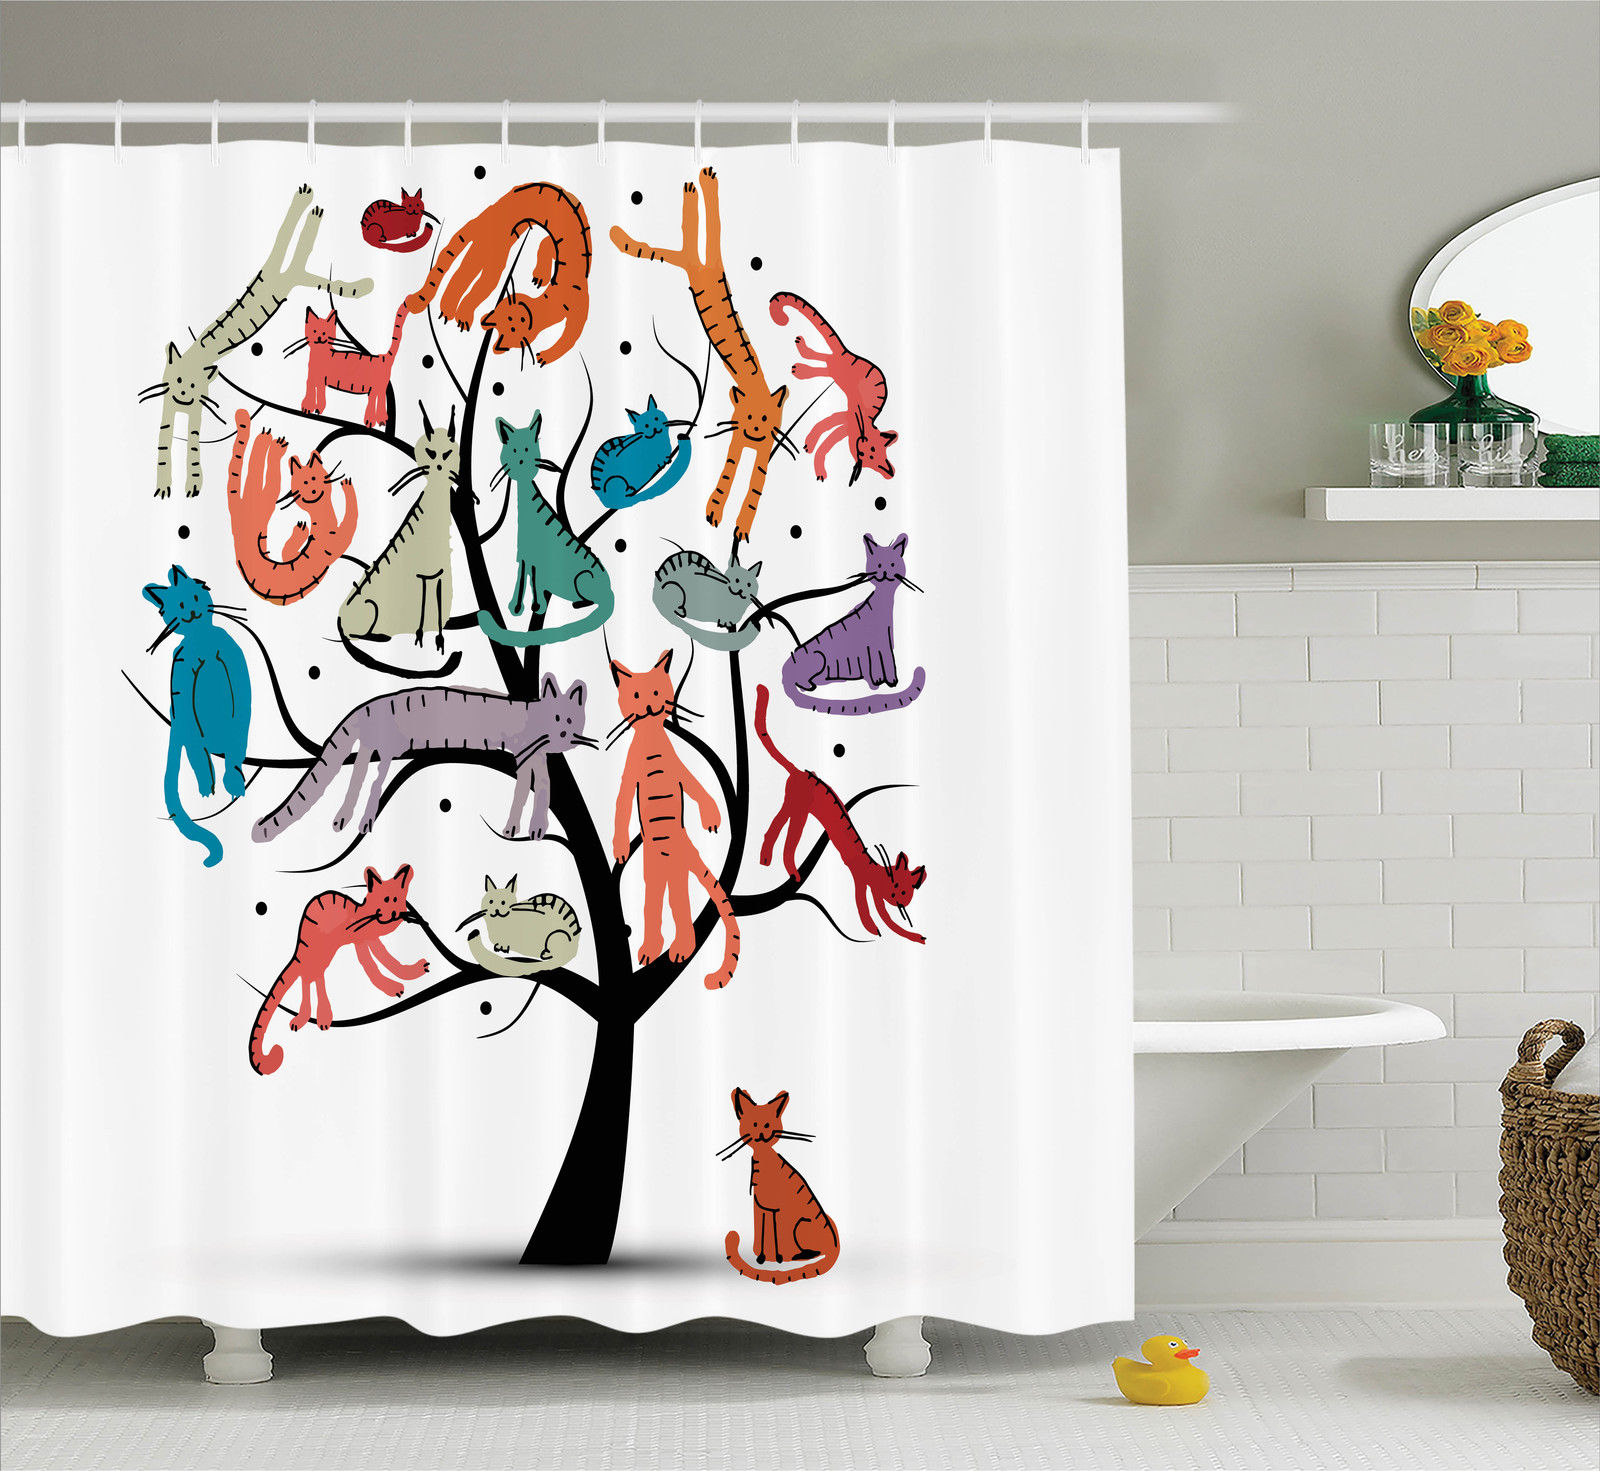 Cartoon Decor Shower Curtain Set, Cute Cat Tree With Various Kitties On The Branches Little Paws Childish Cheerful Art Work, Bathroom Accessories, 69W X 70L Inches, By Ambesonne